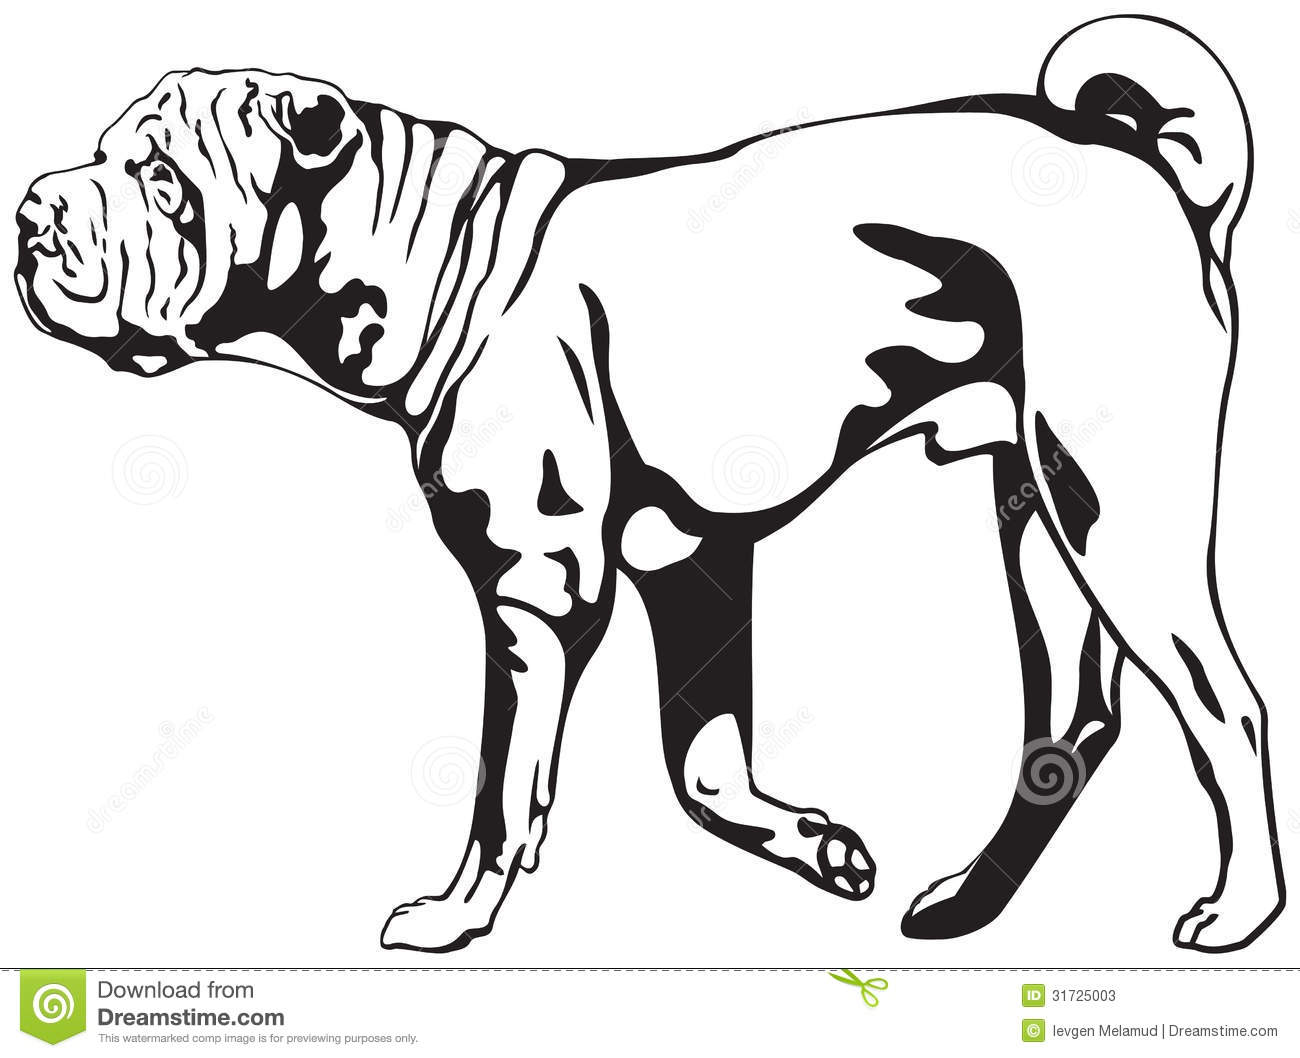 Sharpei clipart #8, Download drawings